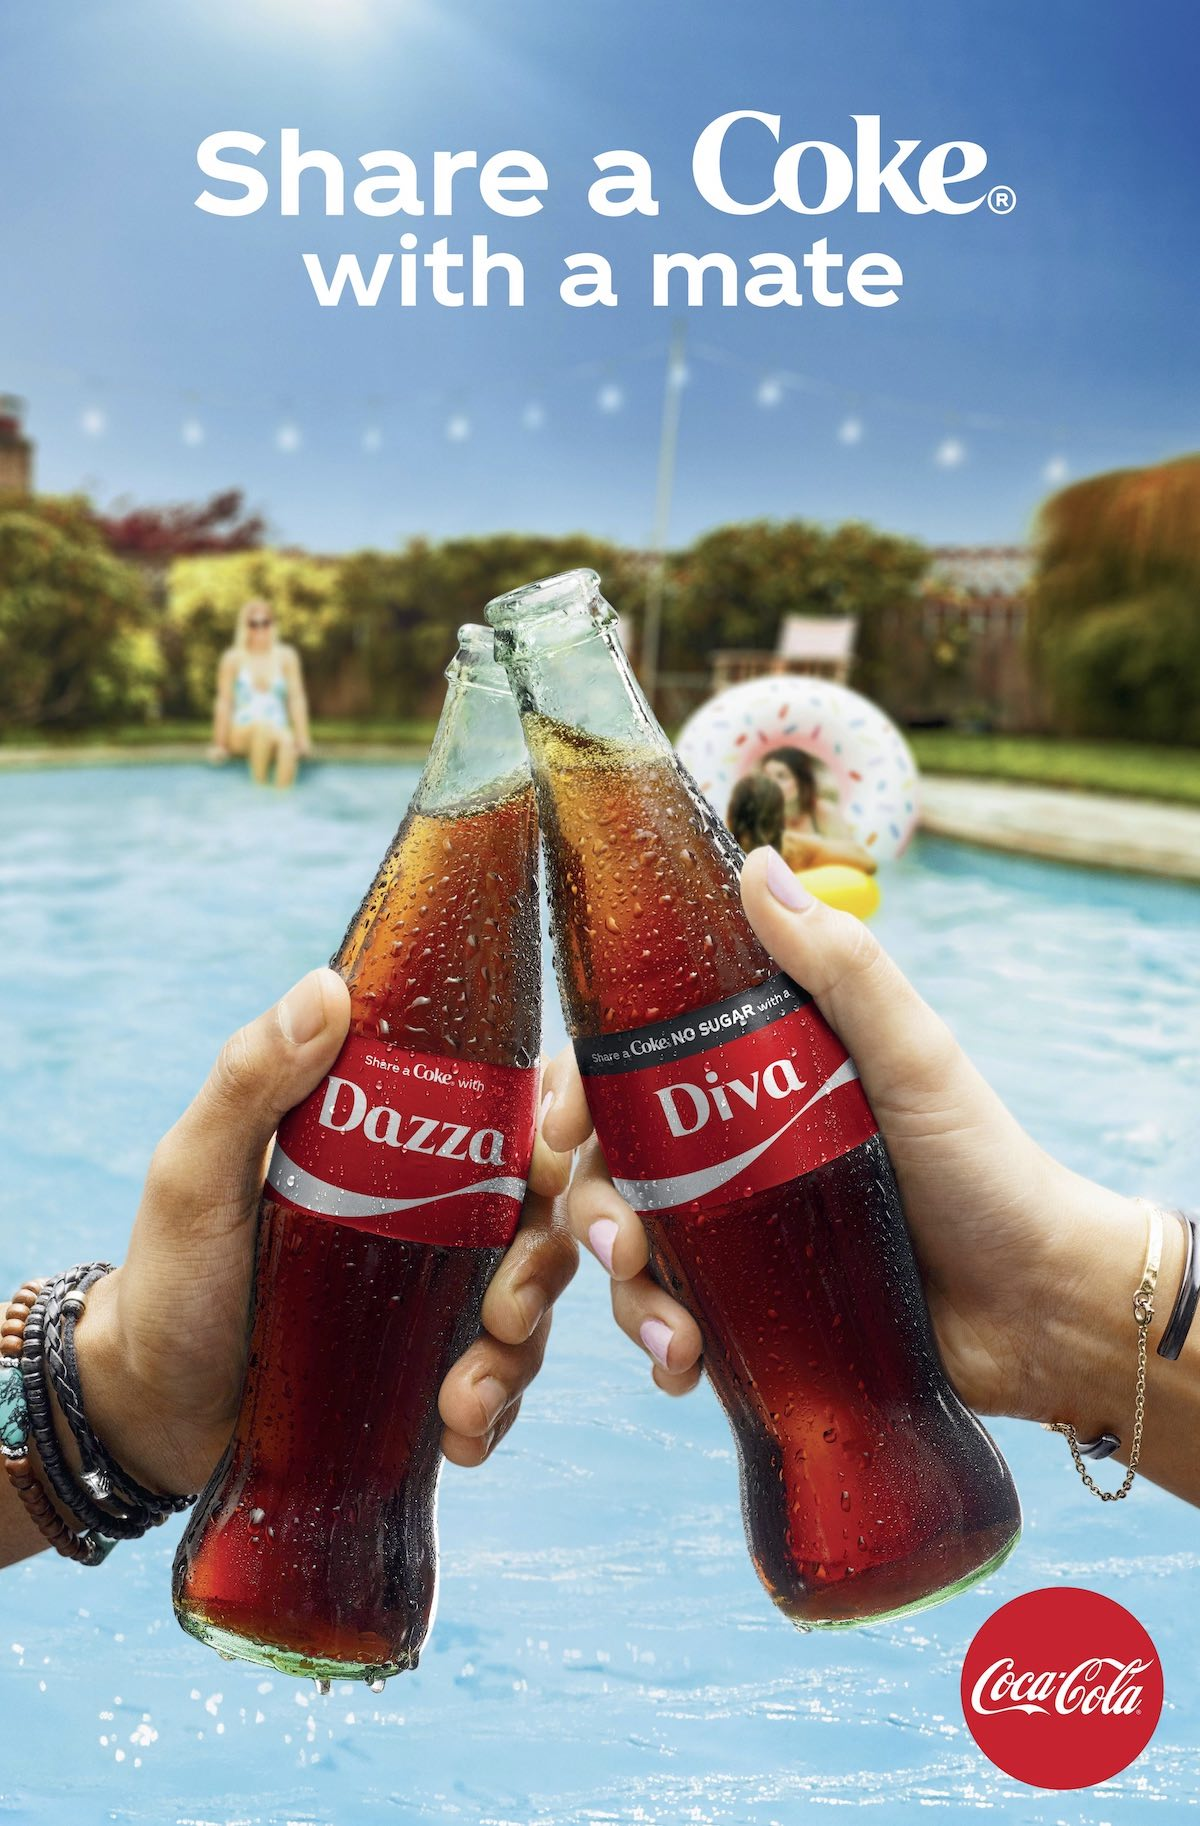 Aussies can 'taste the feeling' of TV fame with return of 'Share a Coke' campaign via Ogilvy